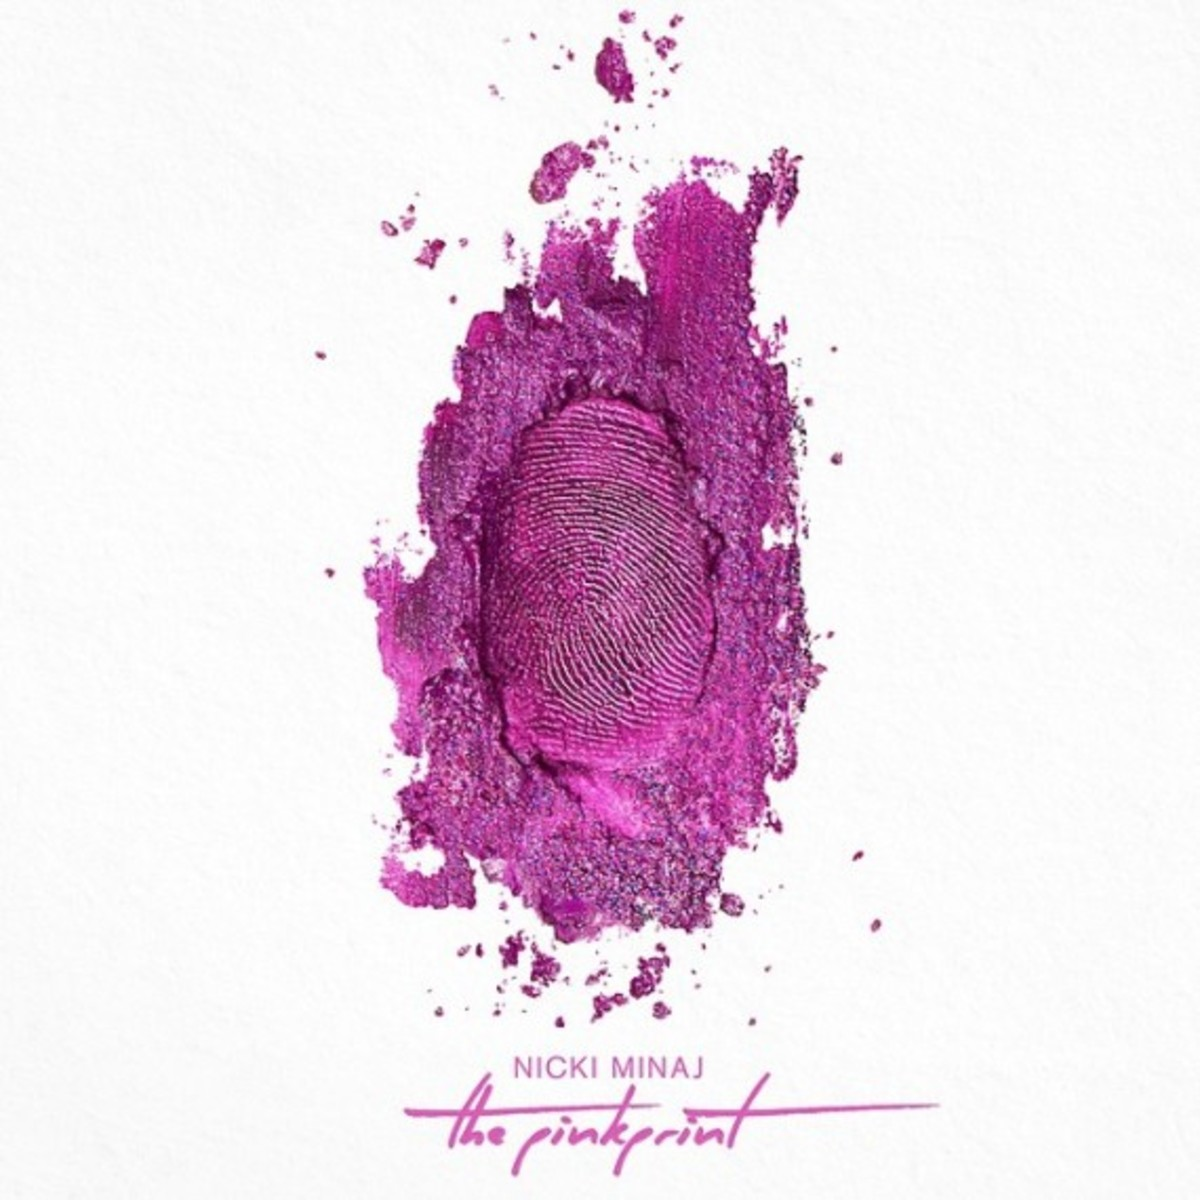 nicki-minaj-the-pinkprint-album-cover-art-deluxe-01